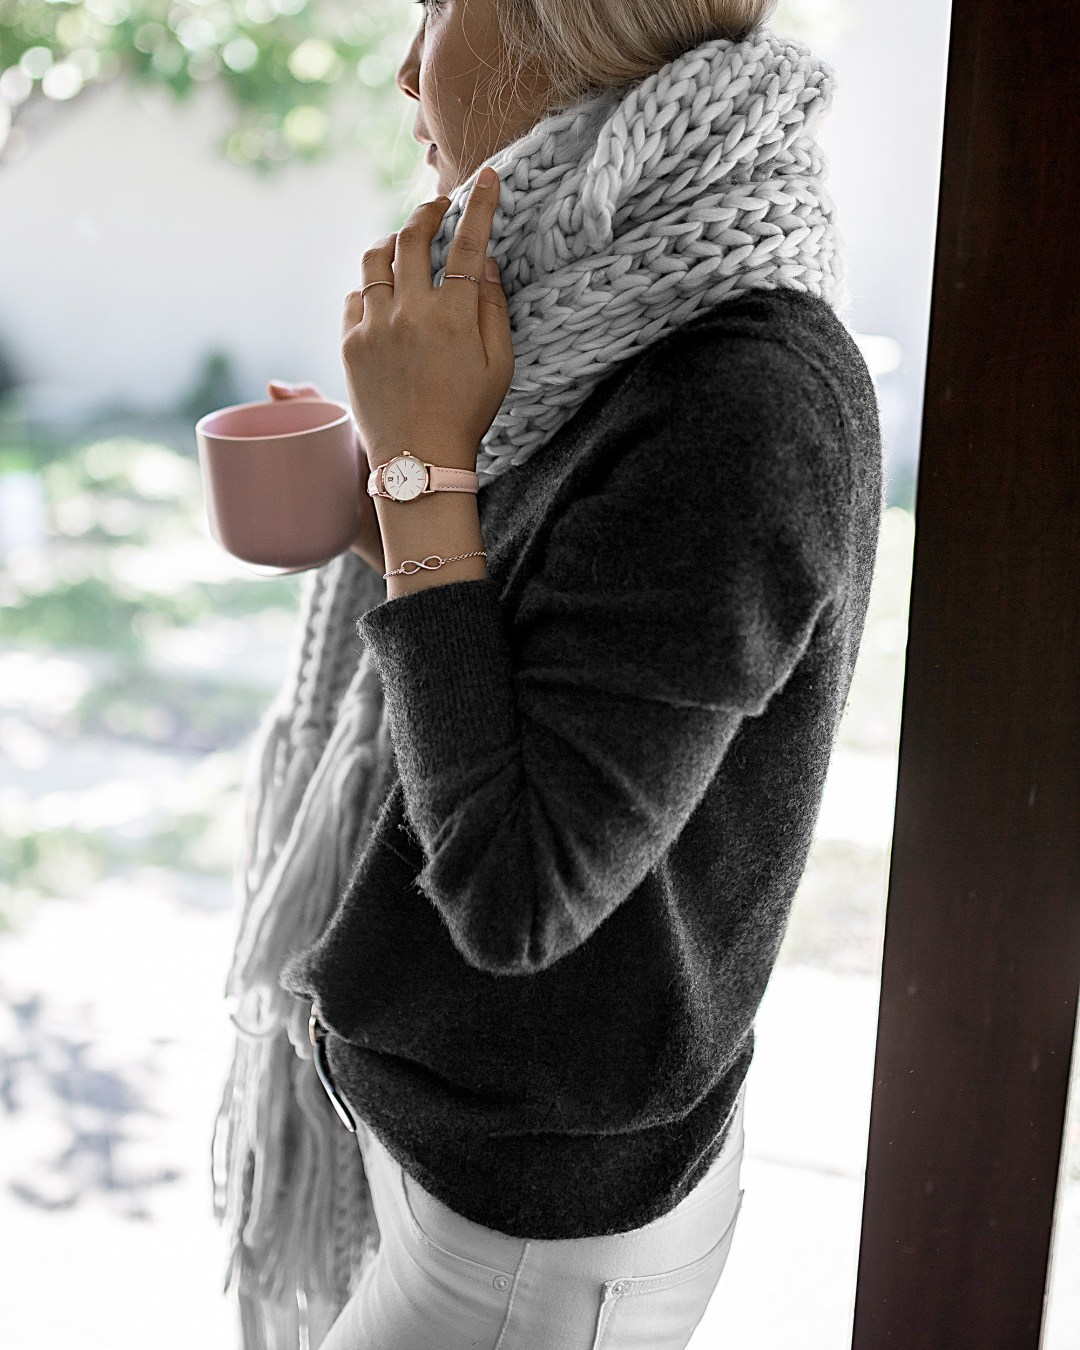 chunky-scarf-adidas-superstar-coffee-morning-inspiration-9-copy